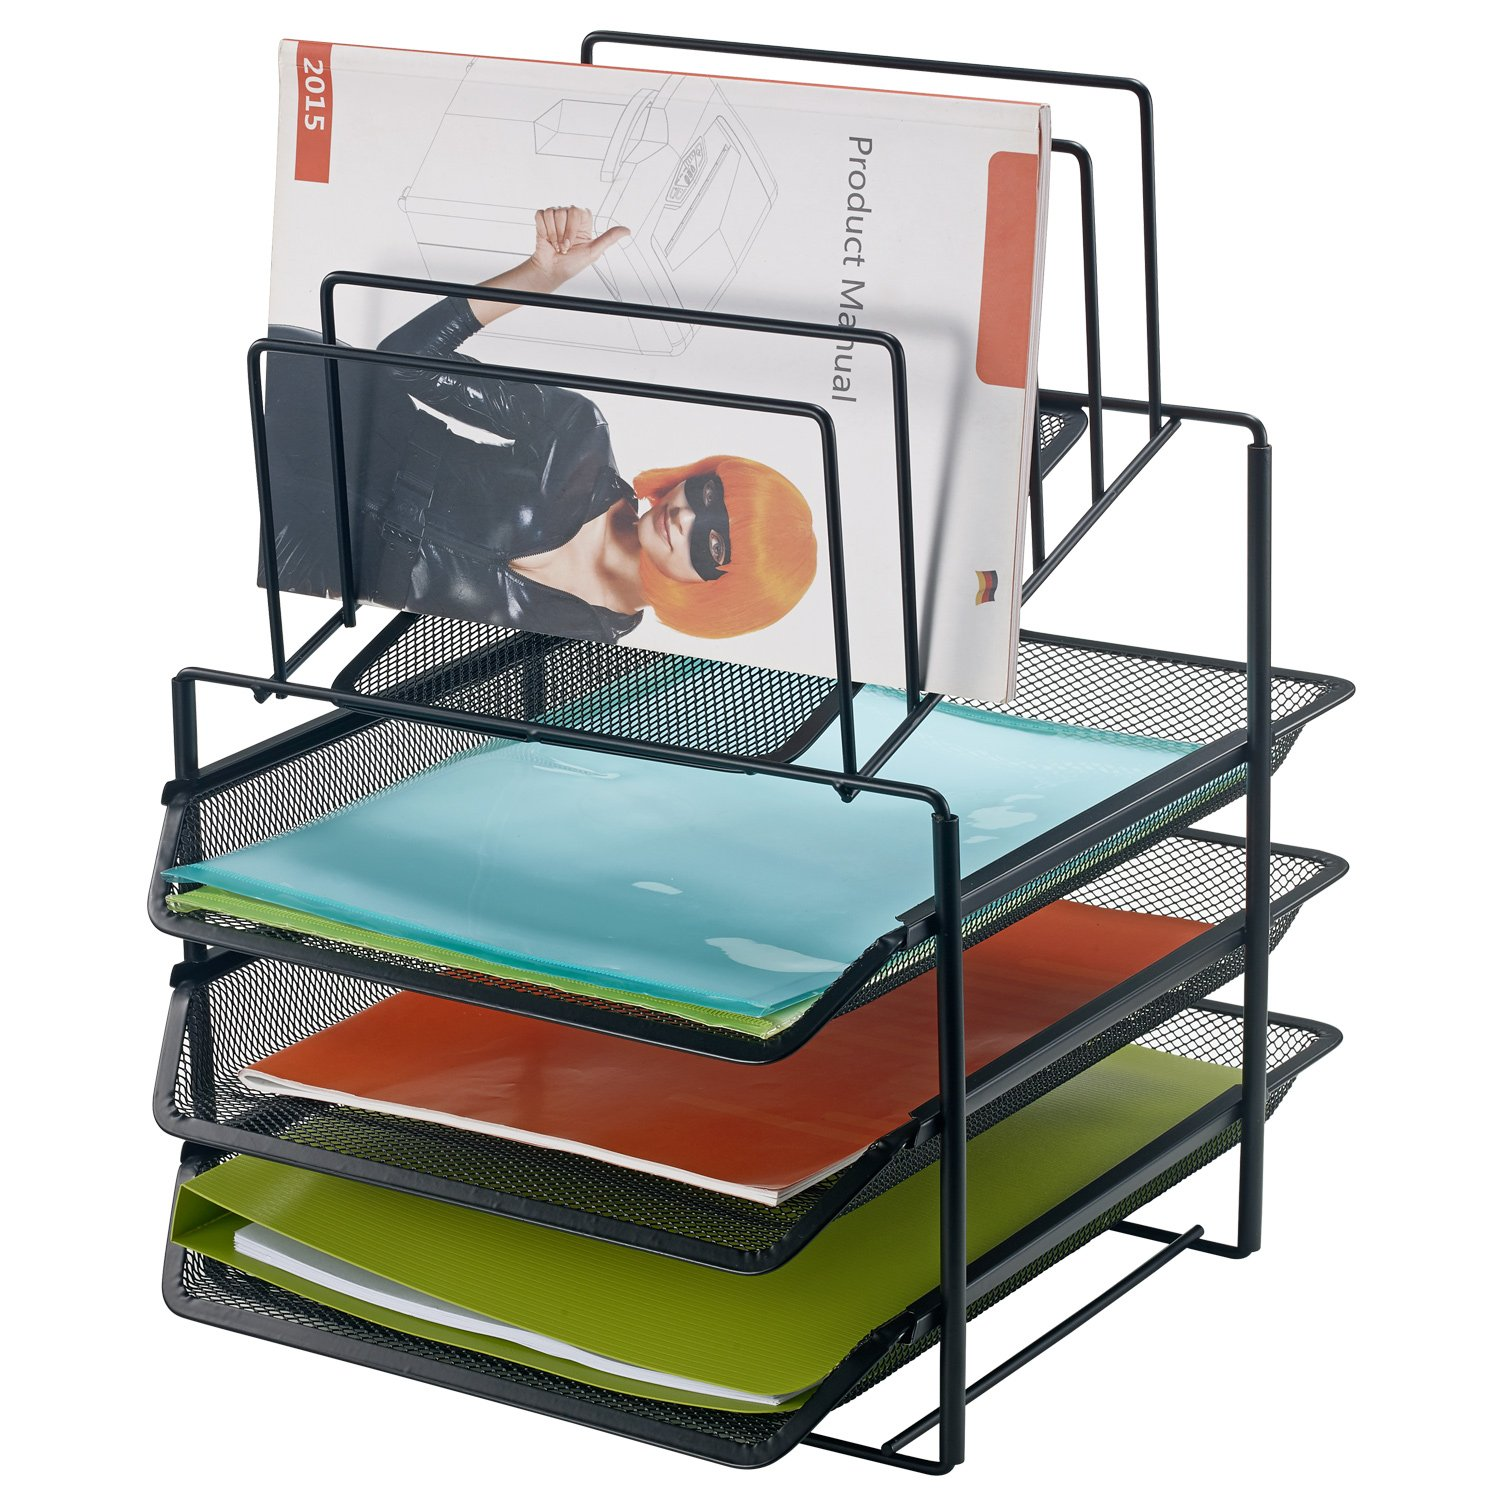 Bonsaii Desk Organizer with 3-Tier Letter File Tray and 5 Stacking Sorter Section,Mesh File Office Organizer,Black(W6428)